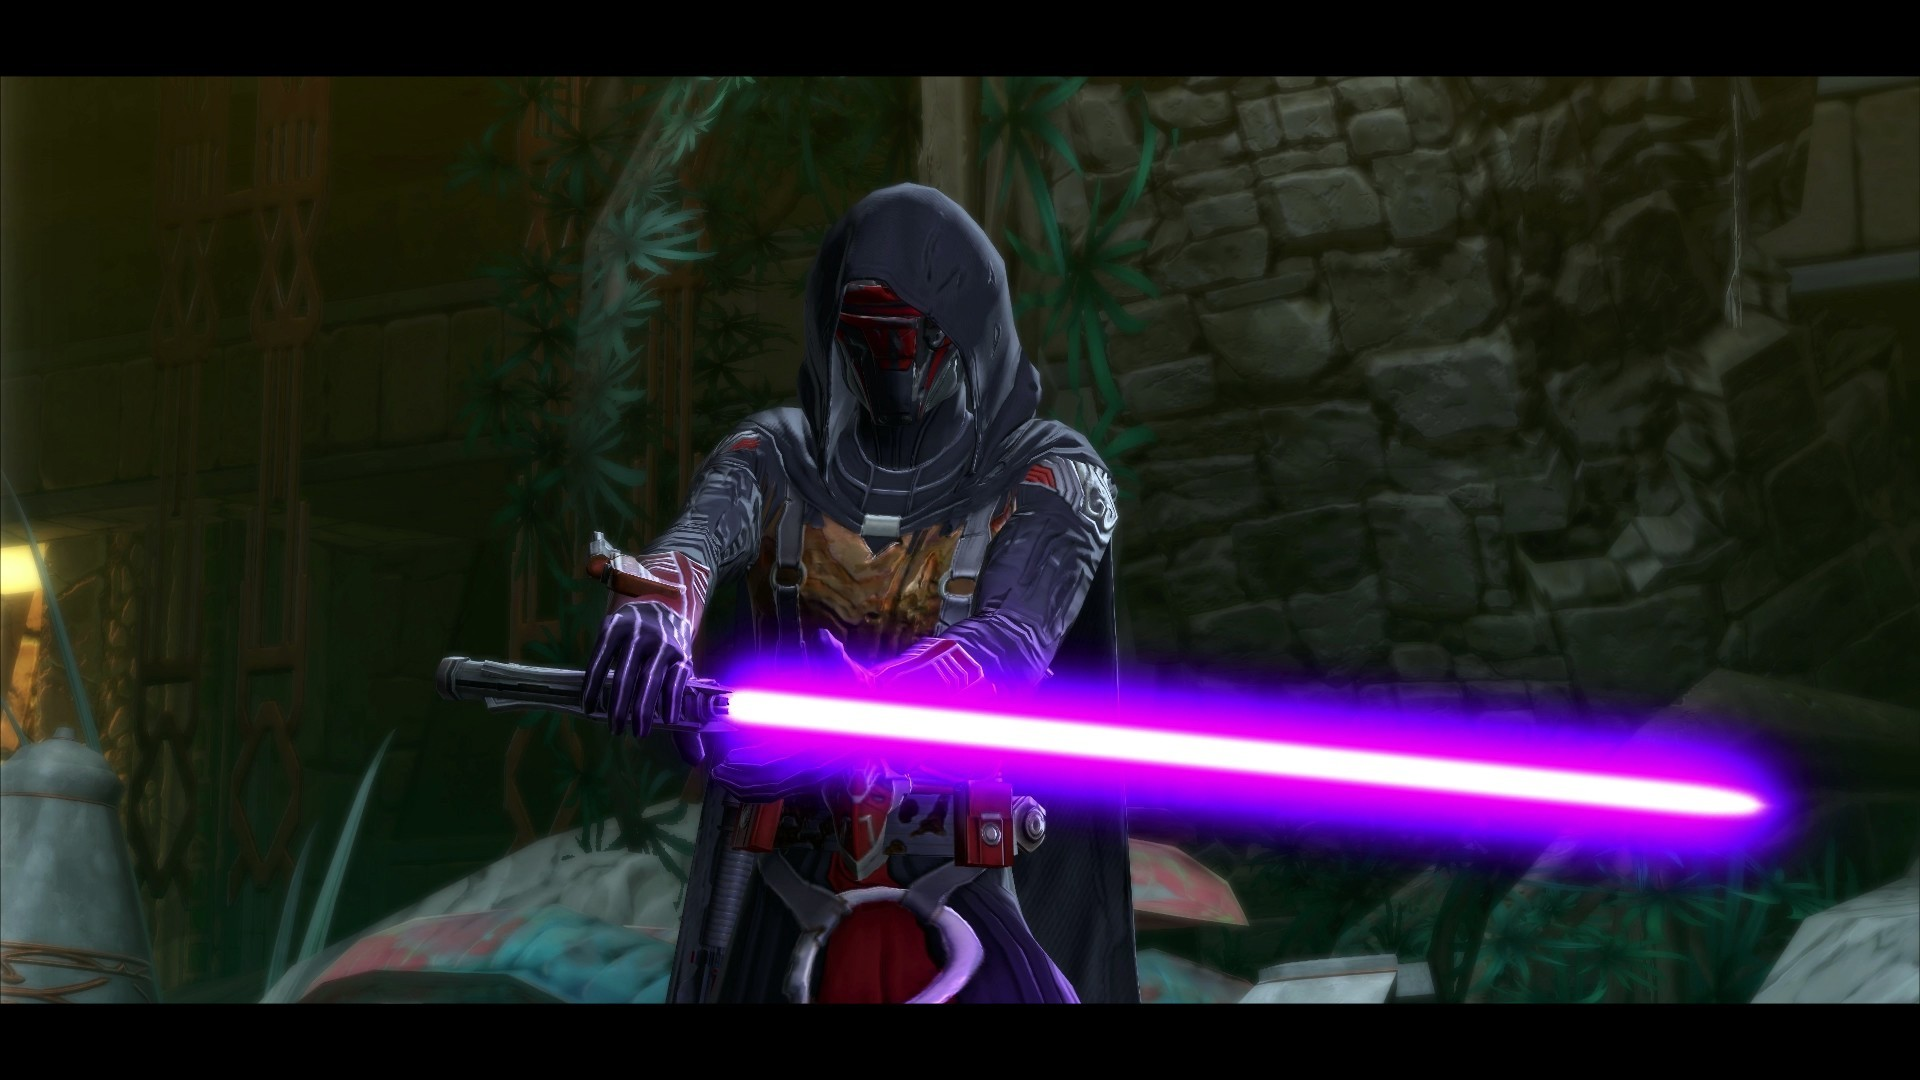 1920x1080 Revan is coming Shadow of Revan look Powerful enemies ...